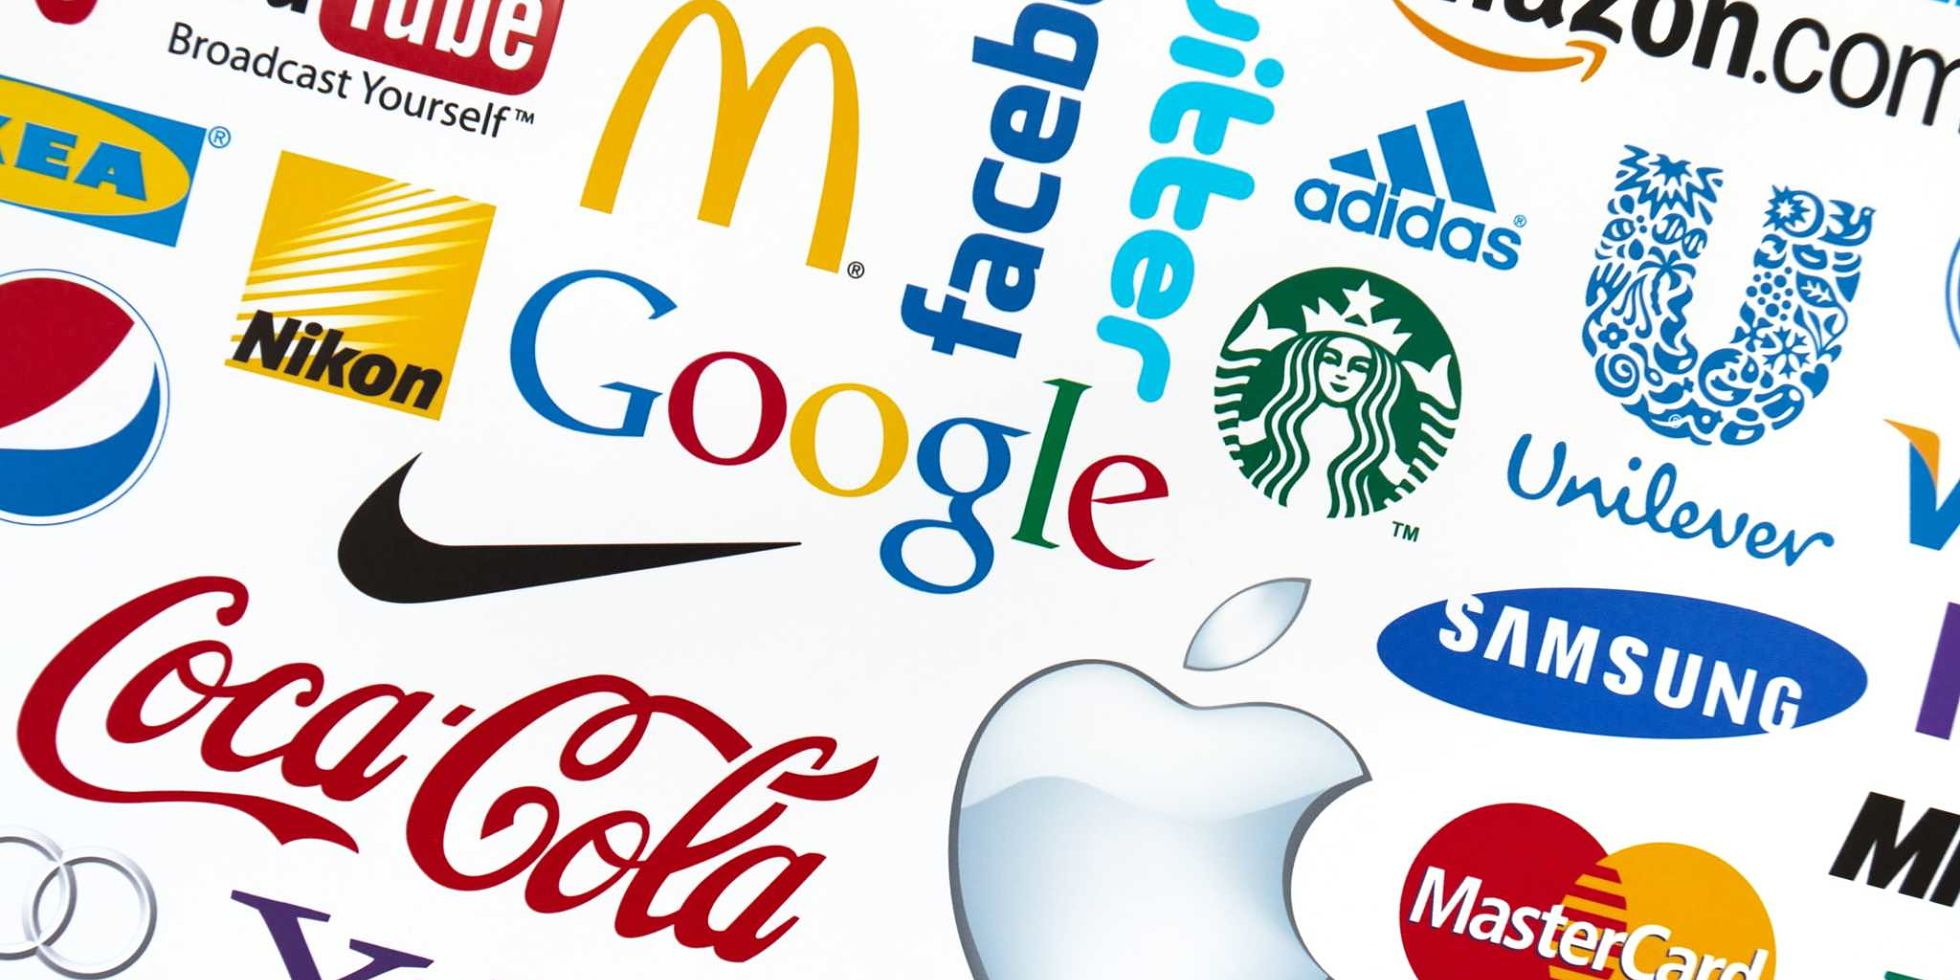 The Team creative brand and communications agency_How to create a brand name